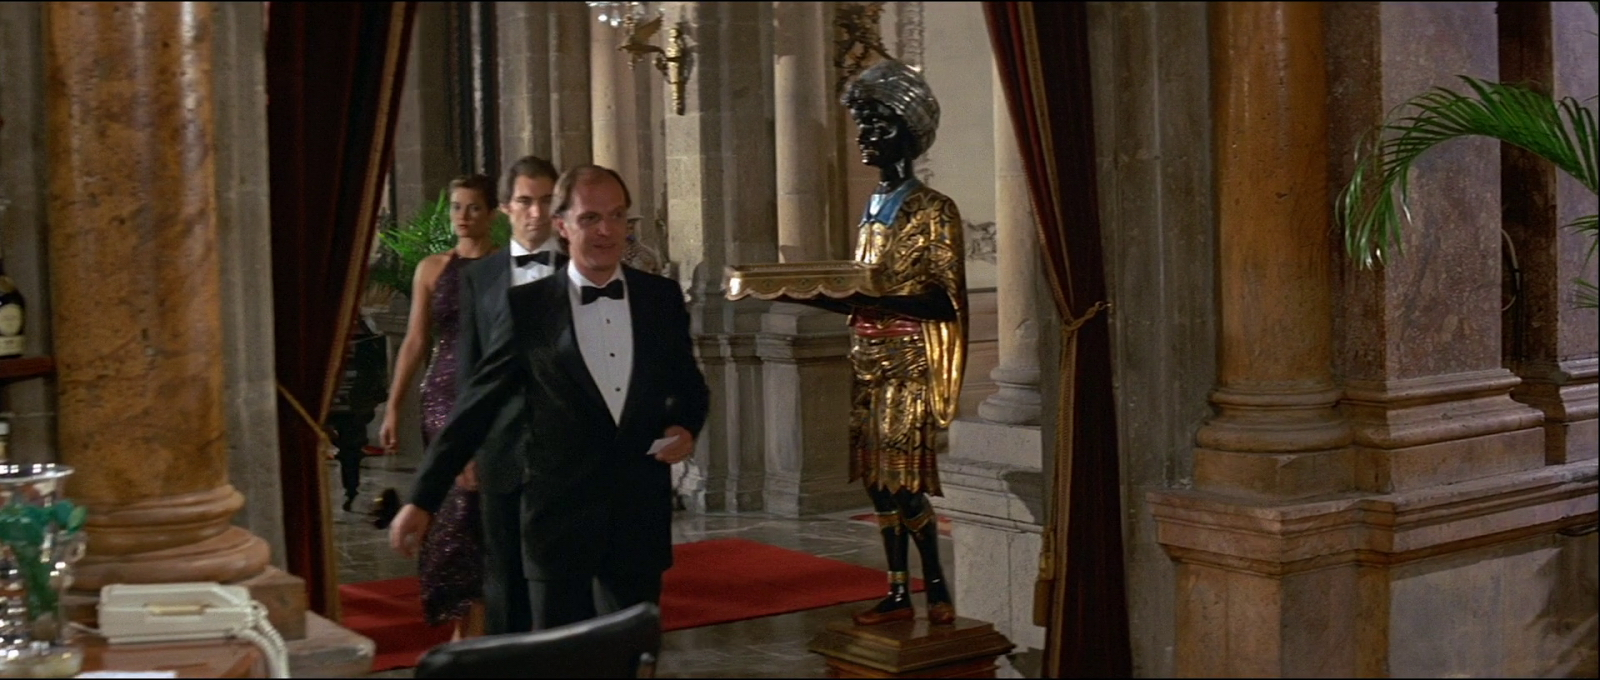 When Bond enters the Casino in Isthmus, a Blackamoor table statue is seen in the first shot